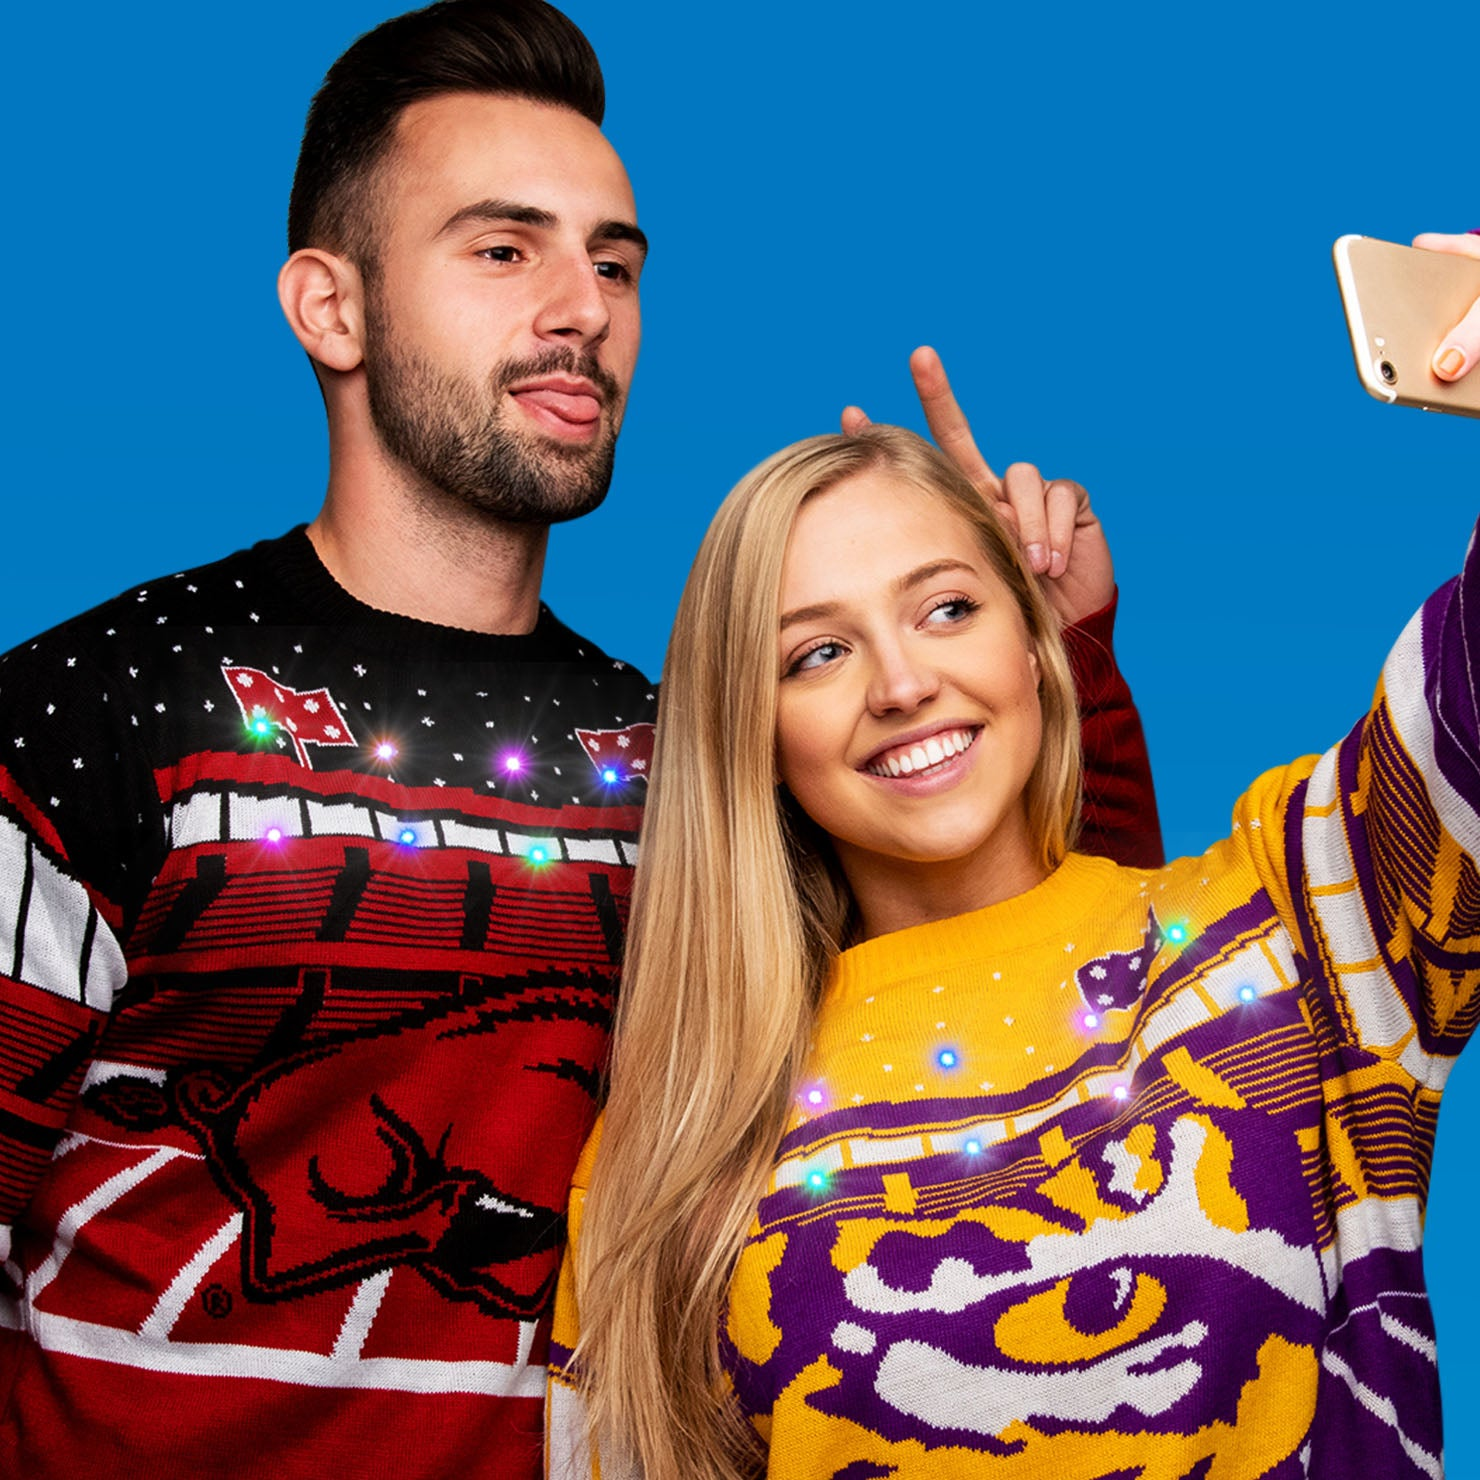 COOLEST SWEATERS<br> ON CAMPUS